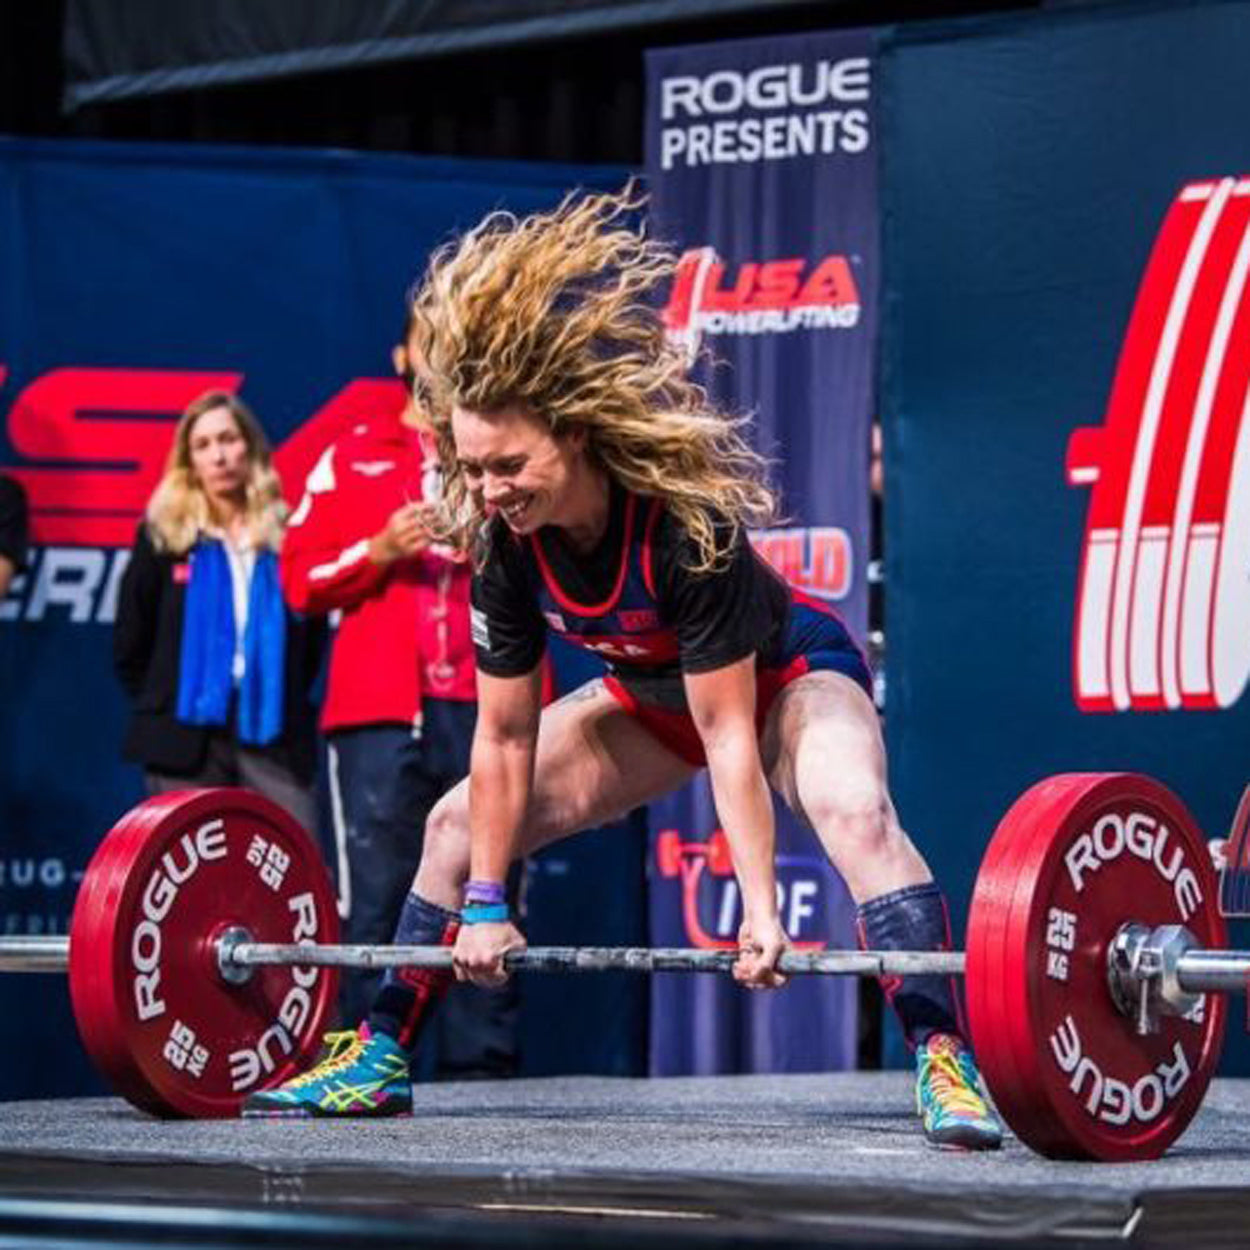 Powerlifter Heather Connor Lifts 200kg At 45kg Body Weight